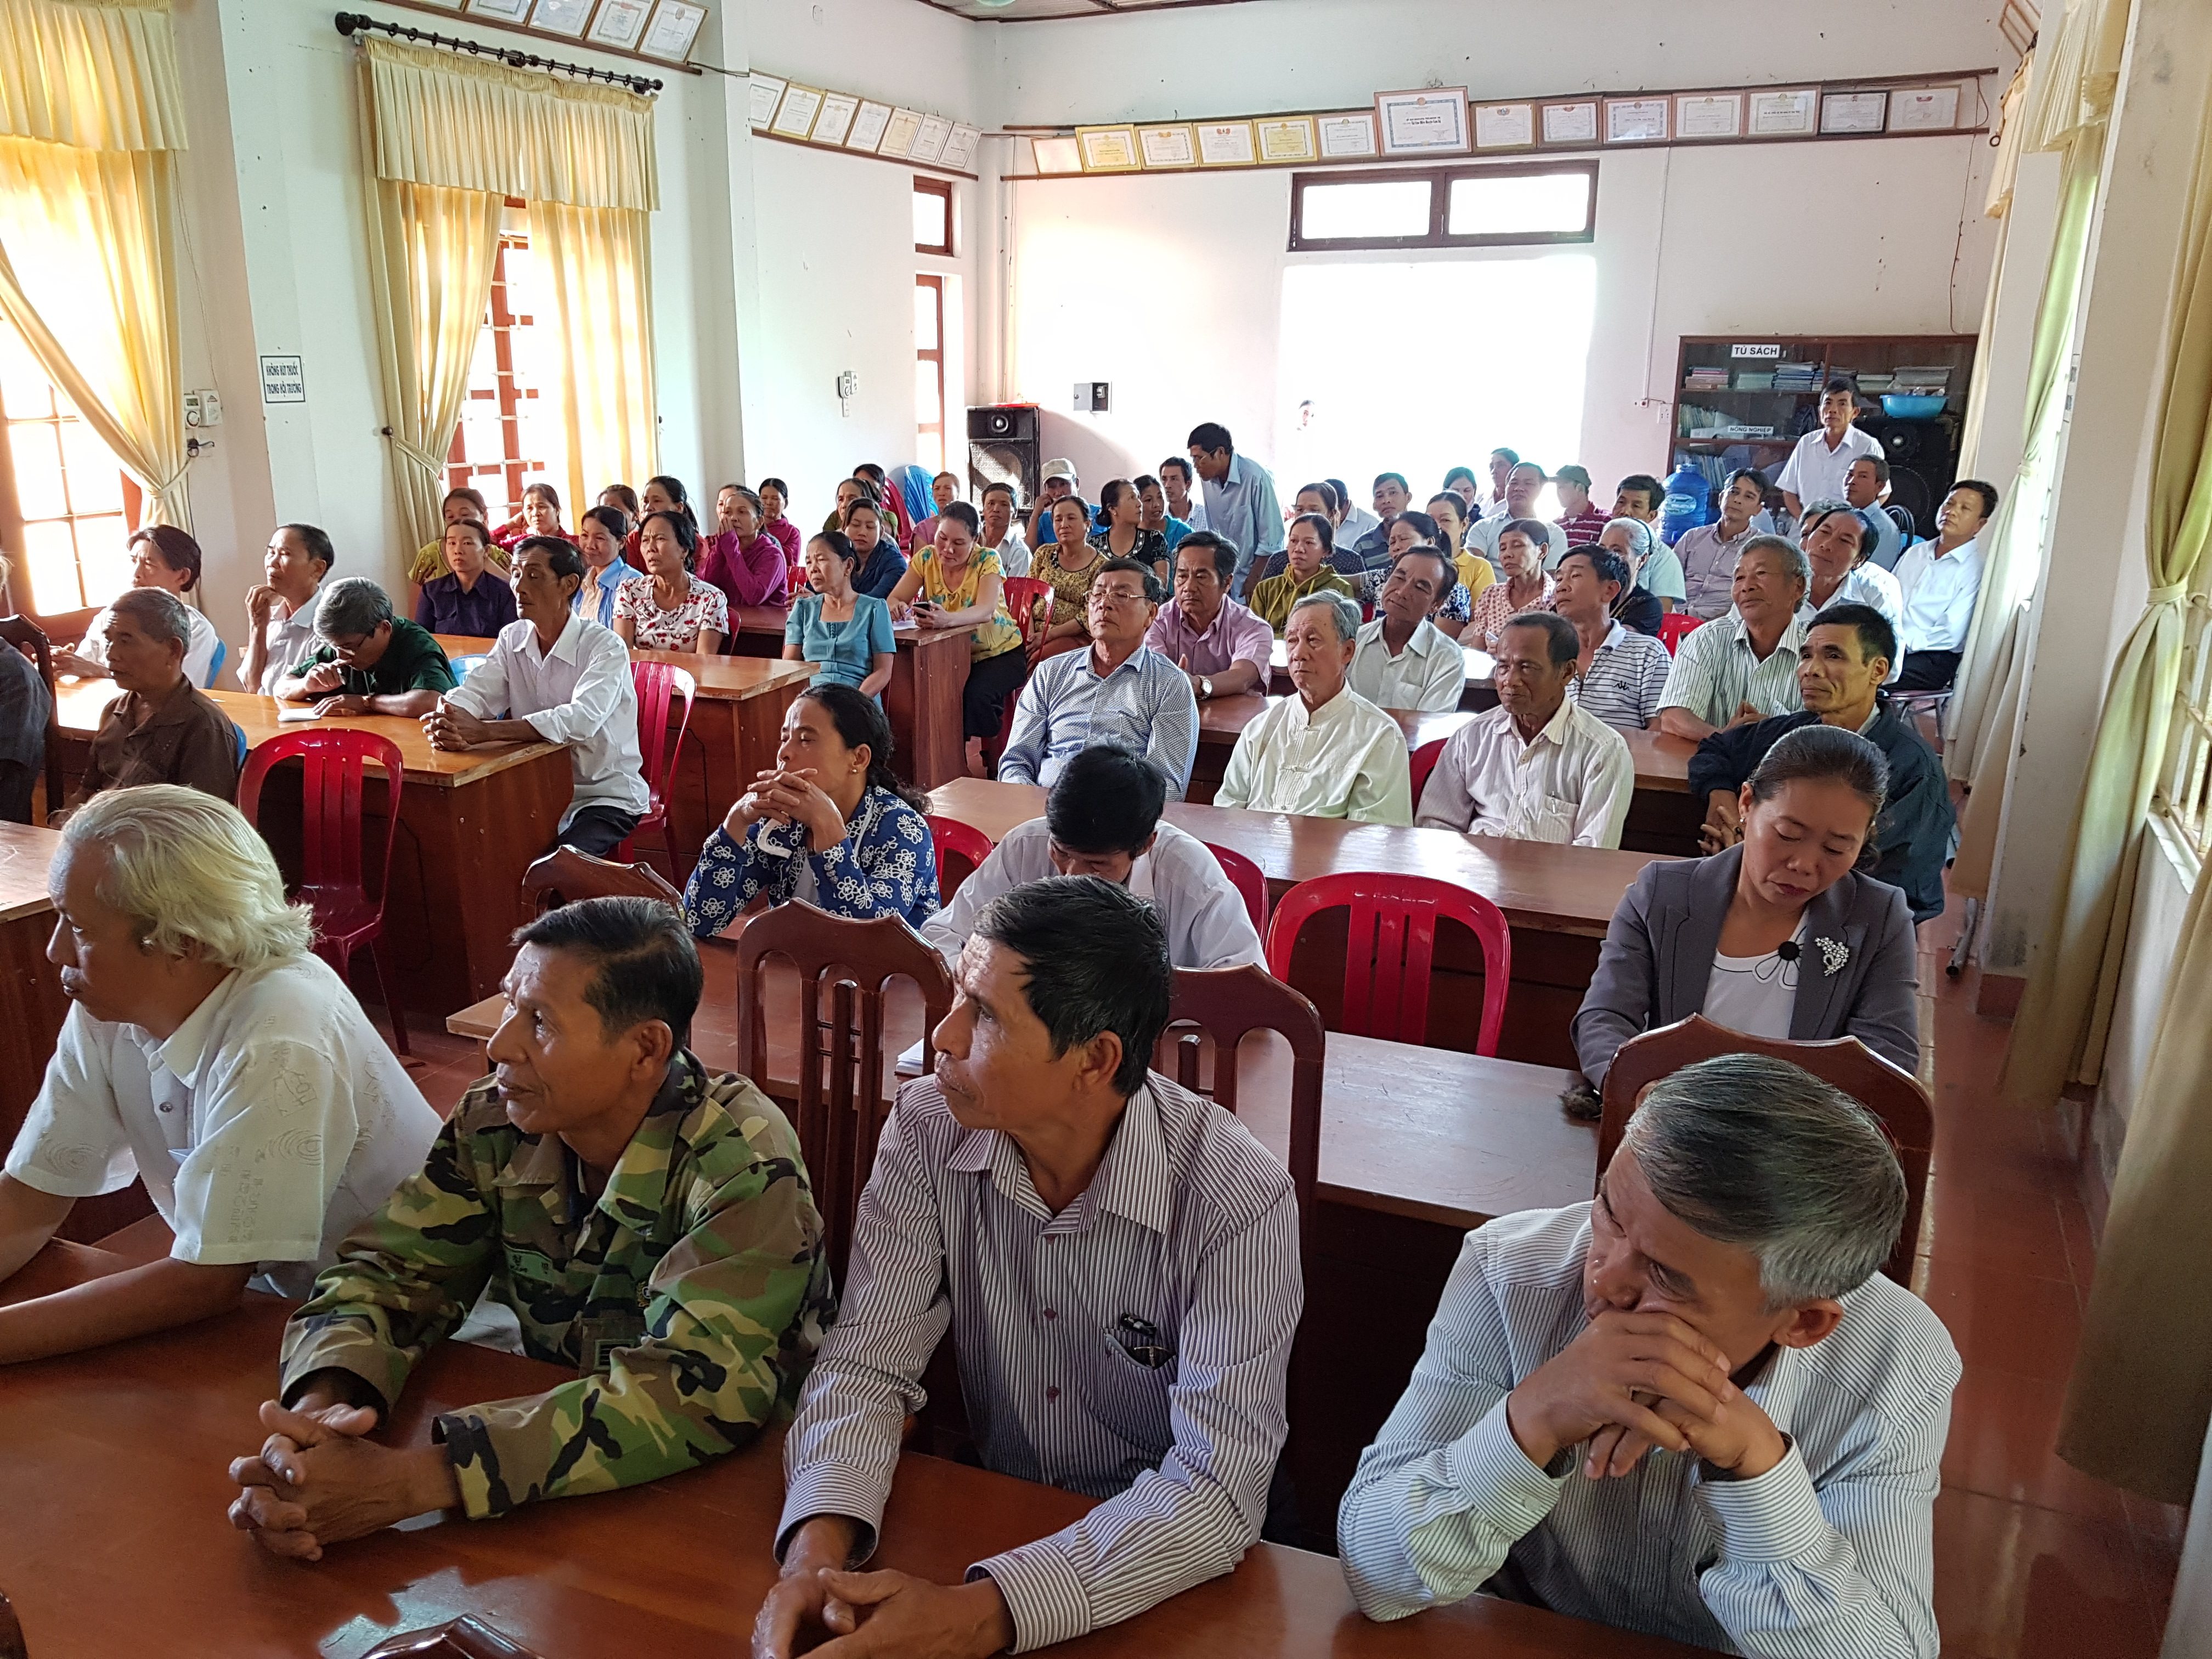 Growing a future - Vietnam's budding sustainable forestry sector